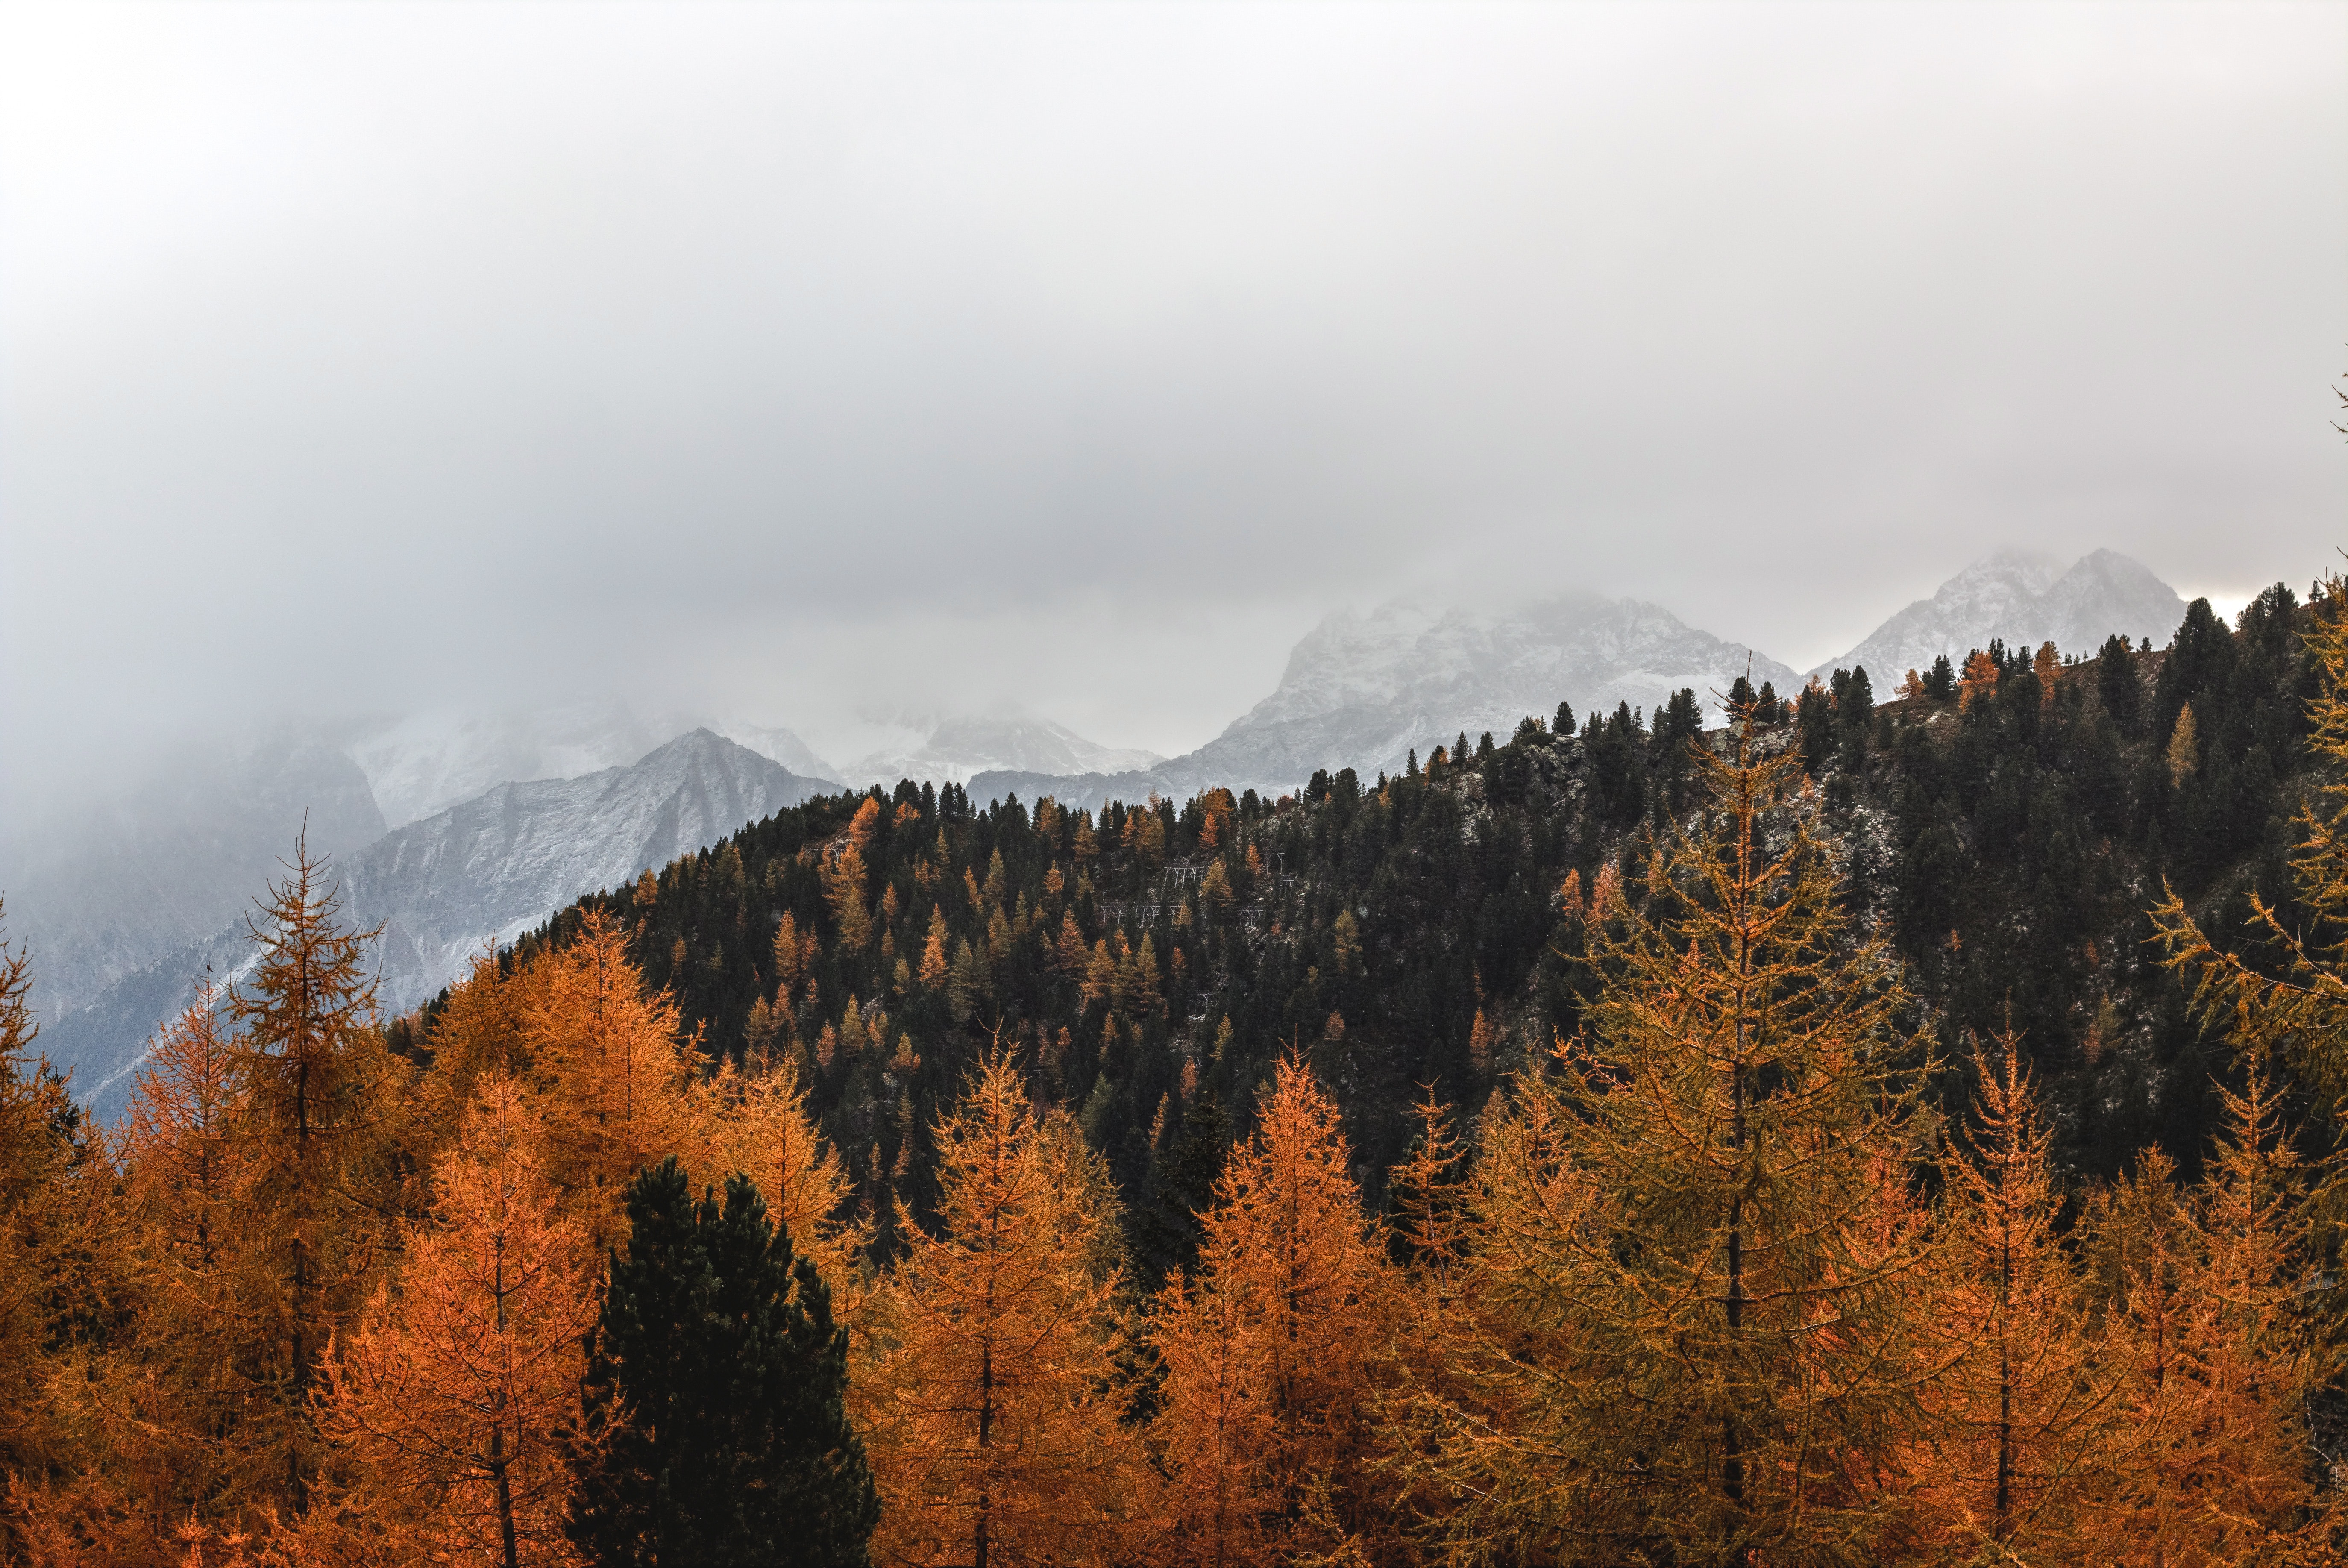 Landscape photography of brown pine trees